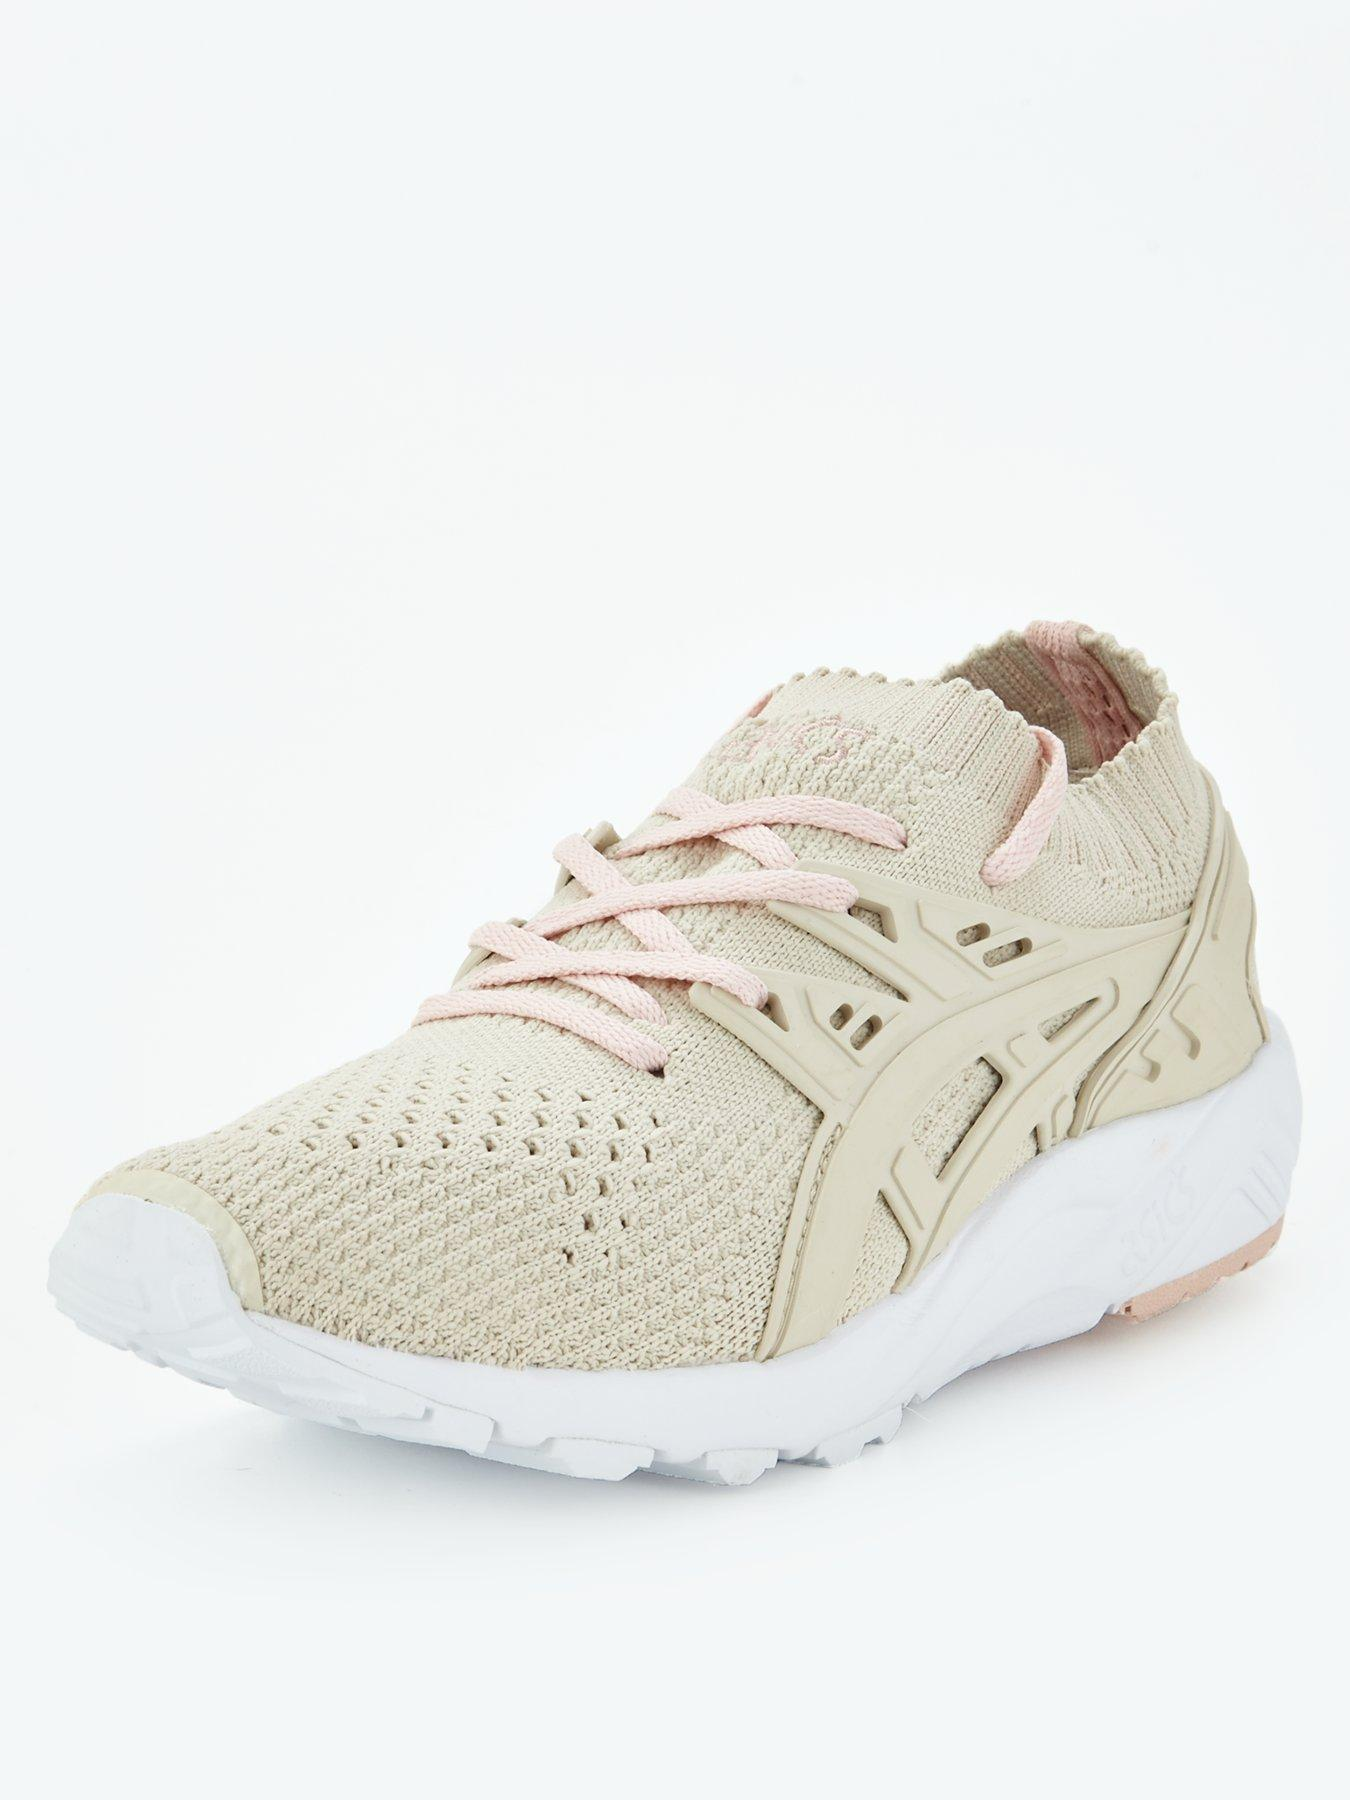 asics clearance uk